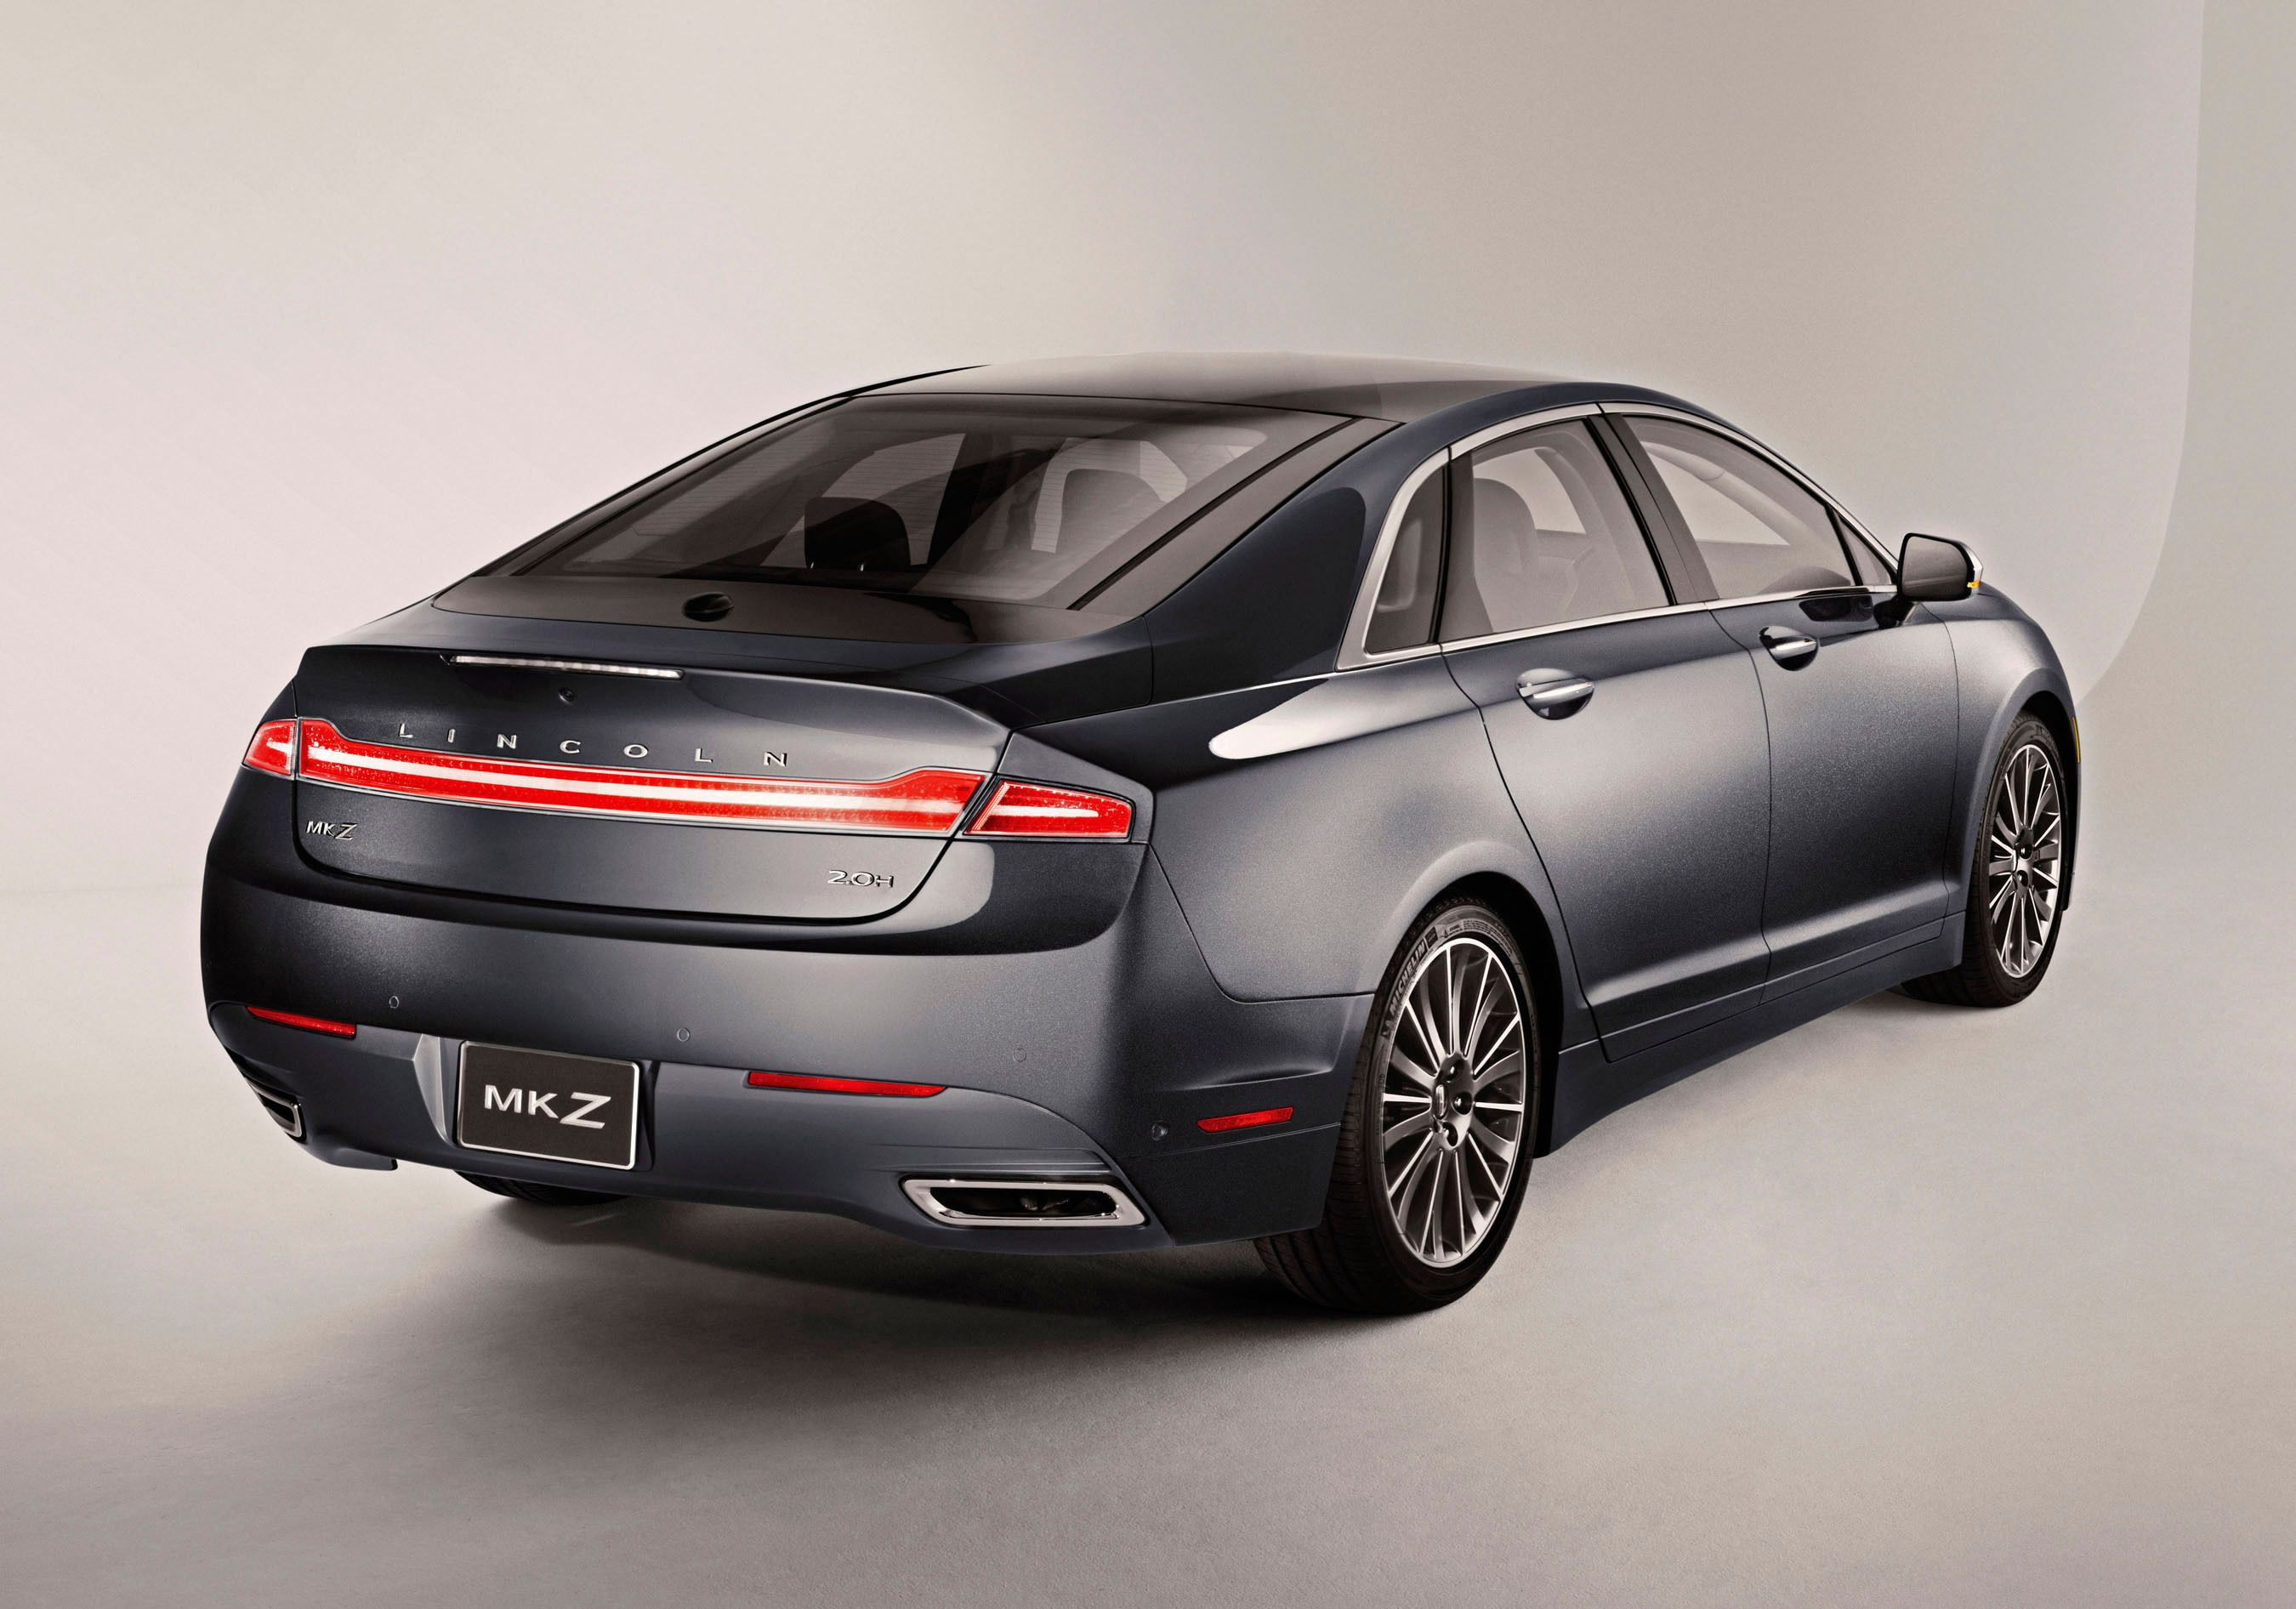 most fuel efficient luxury hybrid car lincoln mkz hybrid cars vehicle and dream cars